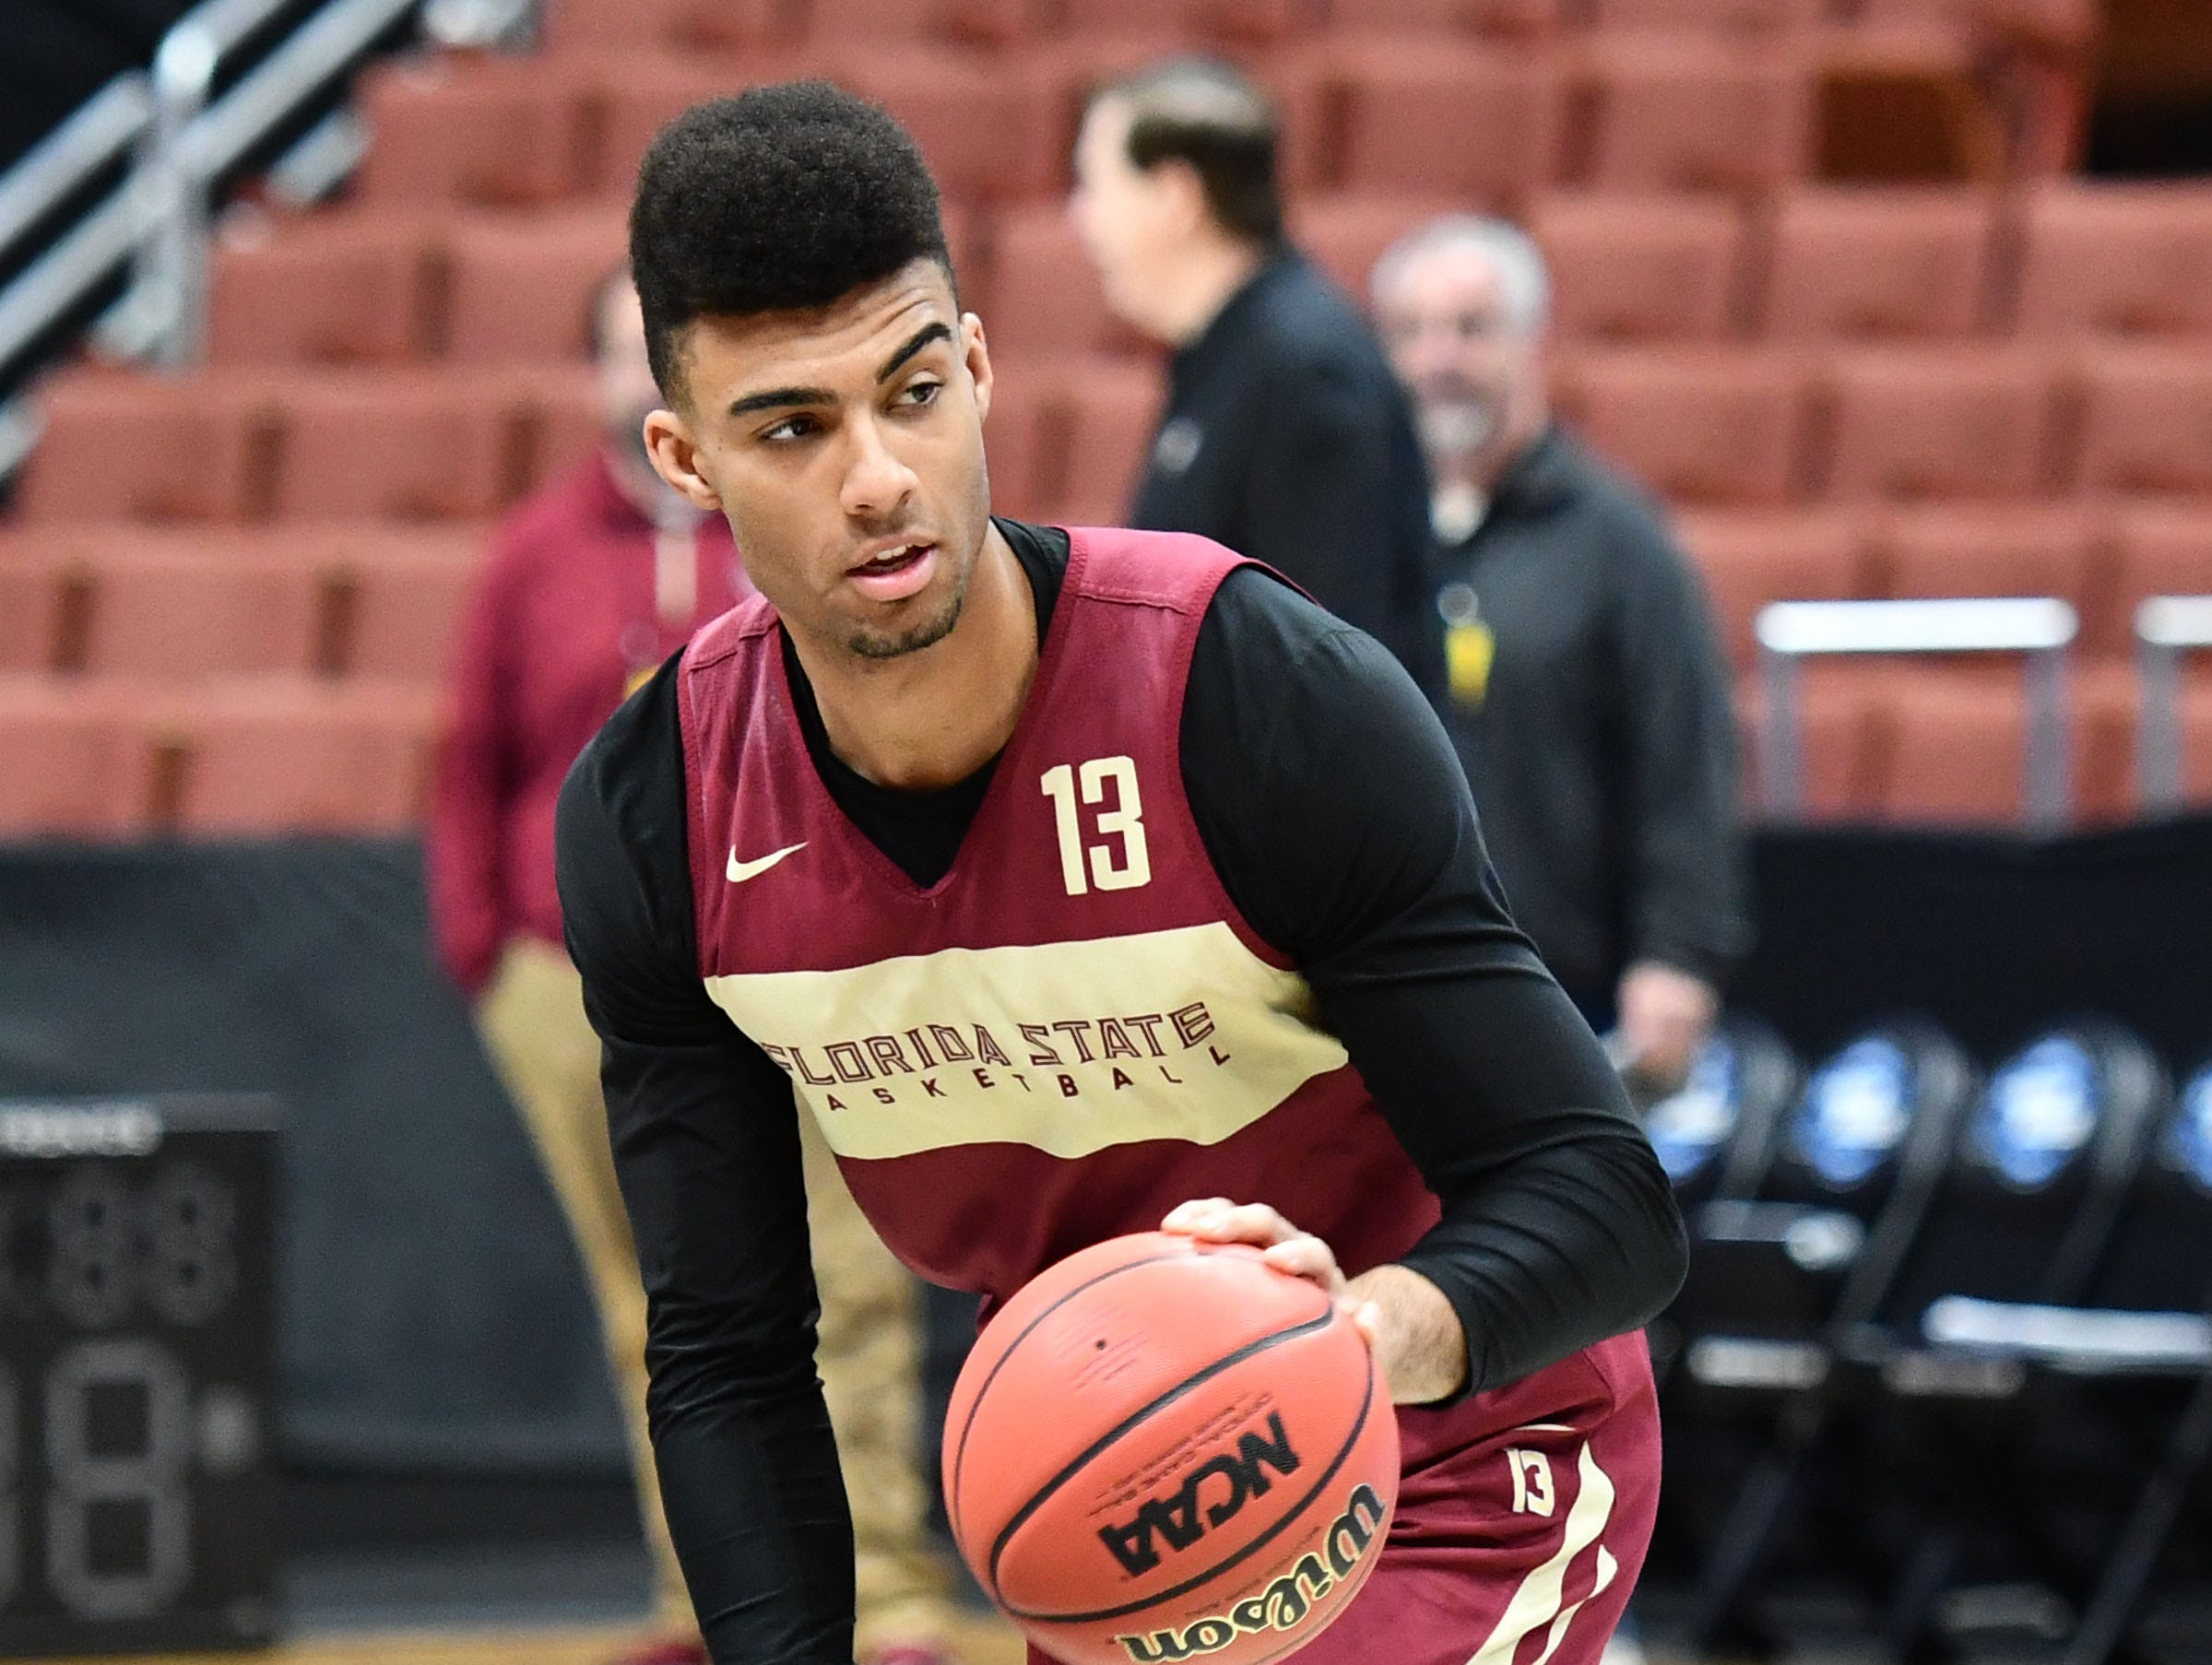 March 27, 2019; Anaheim, CA, USA; Florida State Seminoles guard Anthony Polite (13) during practice for the west regional of the 2019 NCAA Tournament at Honda Center. Mandatory Credit: Robert Hanashiro-USA TODAY Sports